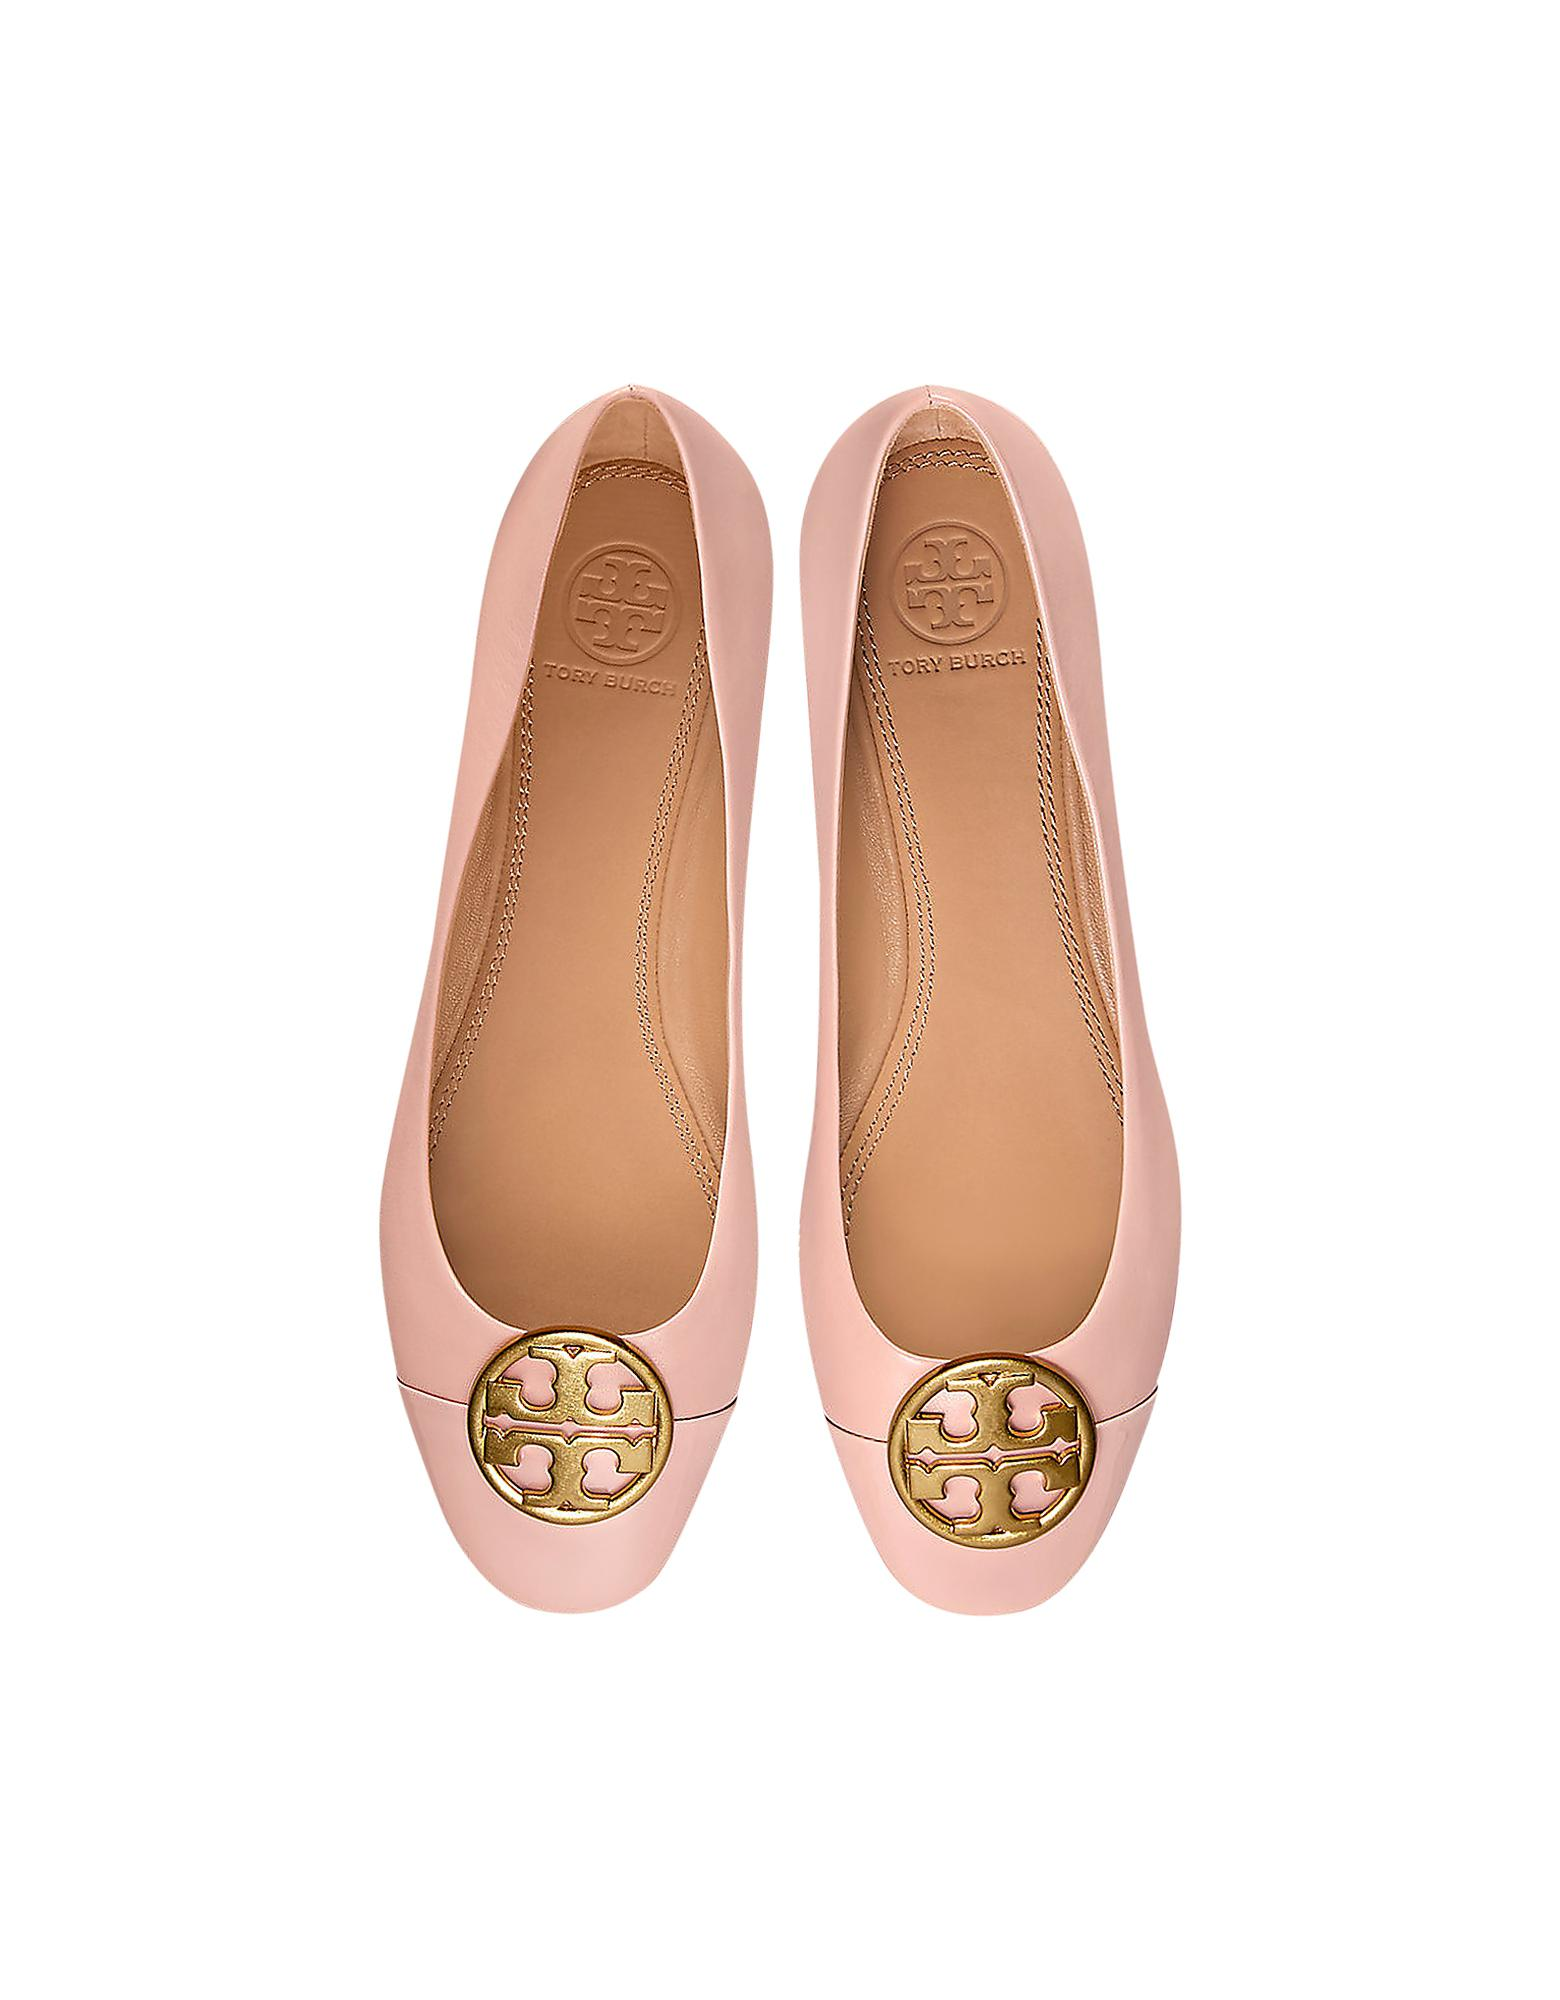 Tory Burch Shoes, Goan Sand Nappa & Patent Leather Chelsea Cap-Toe Ballet Flats